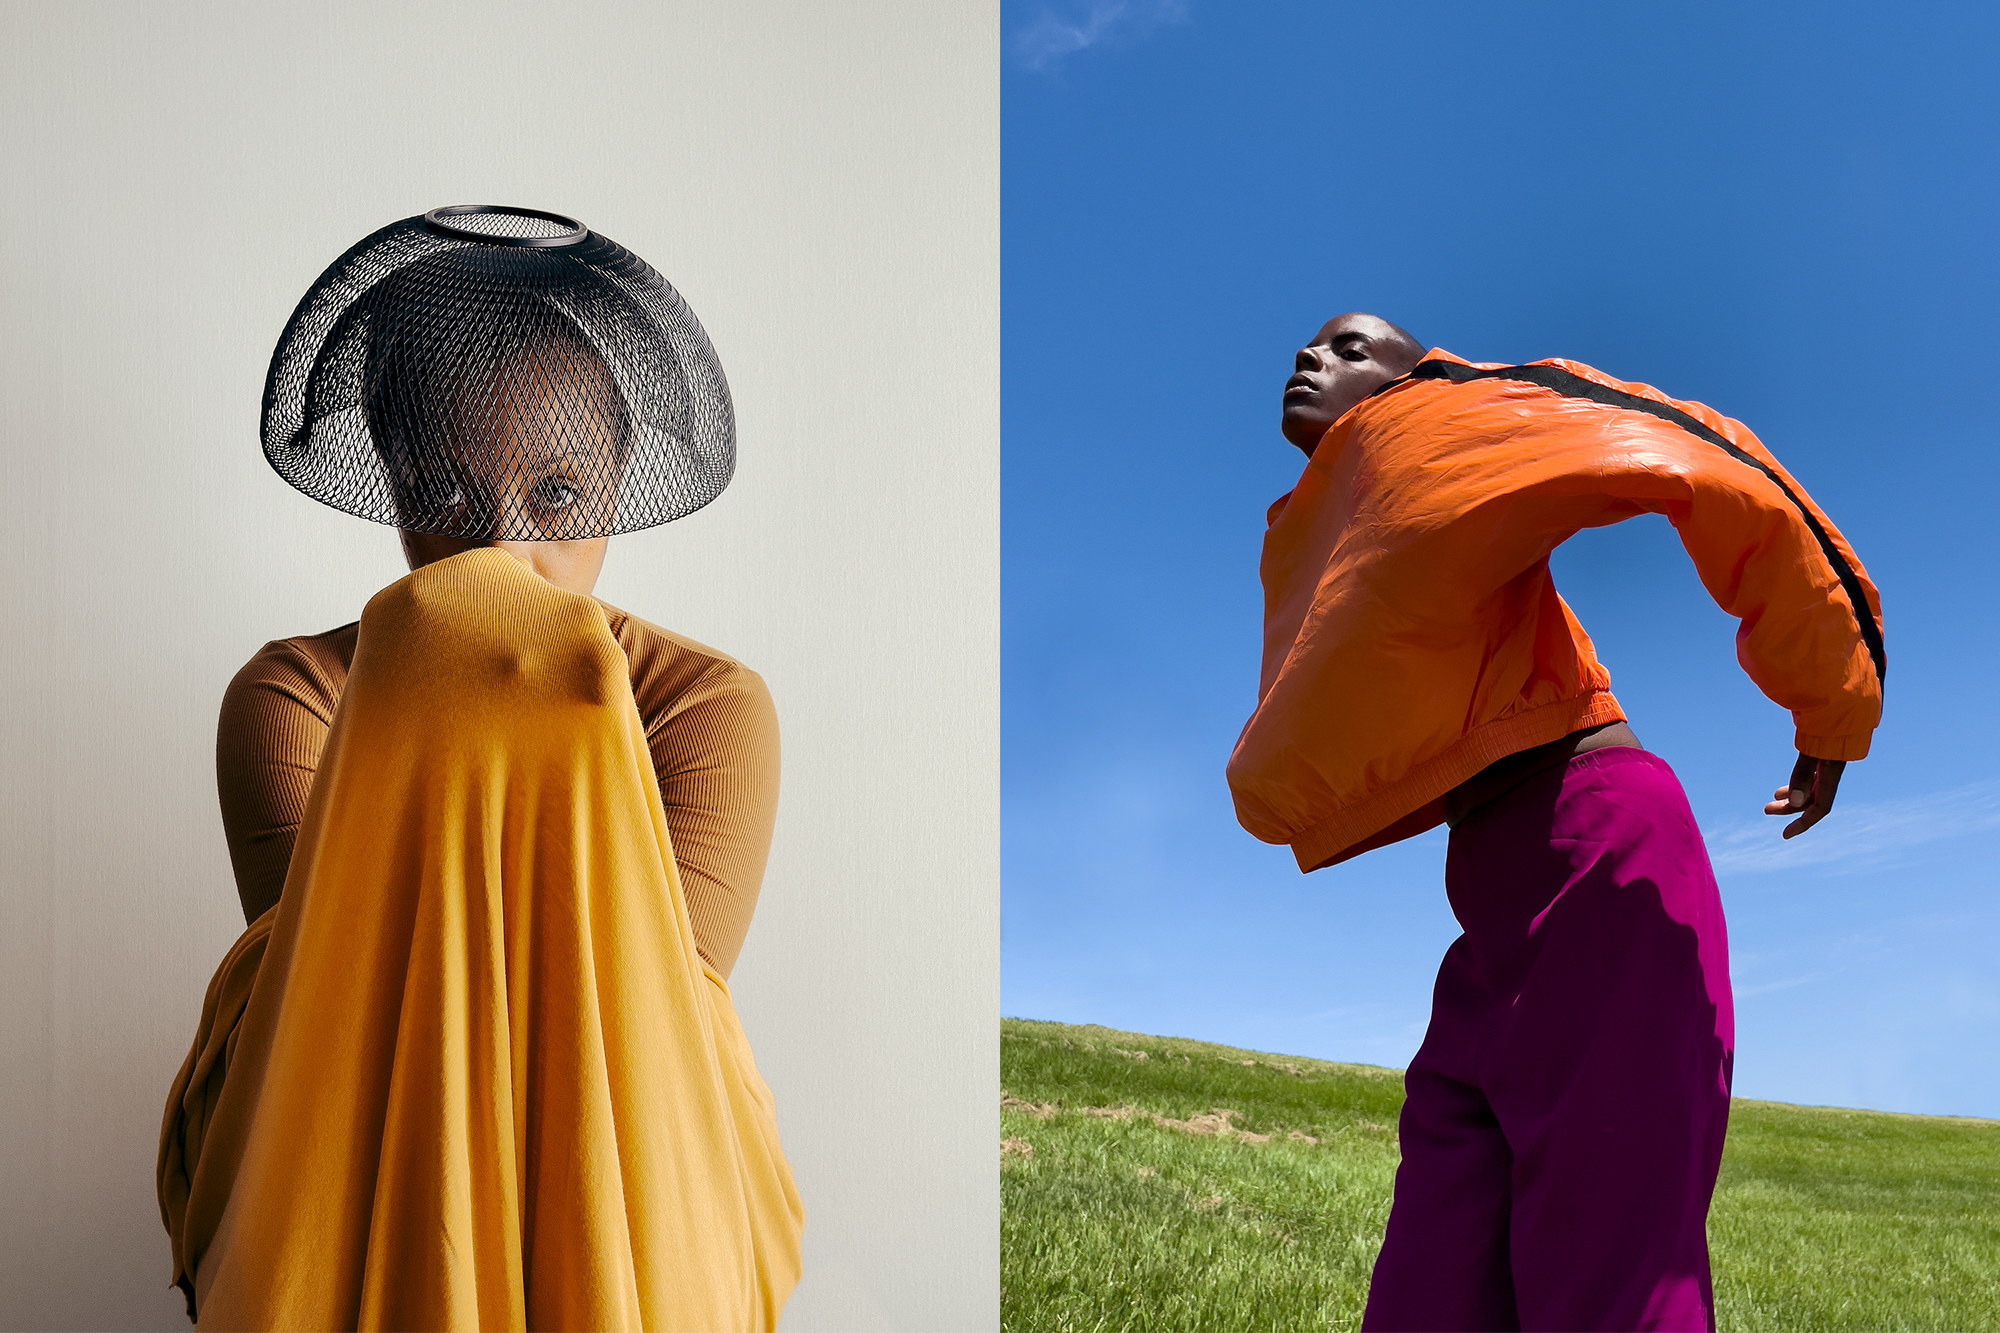 Person with a mesh head covering and bright garment partially covering their face; person with bright-colored pants and top in a field